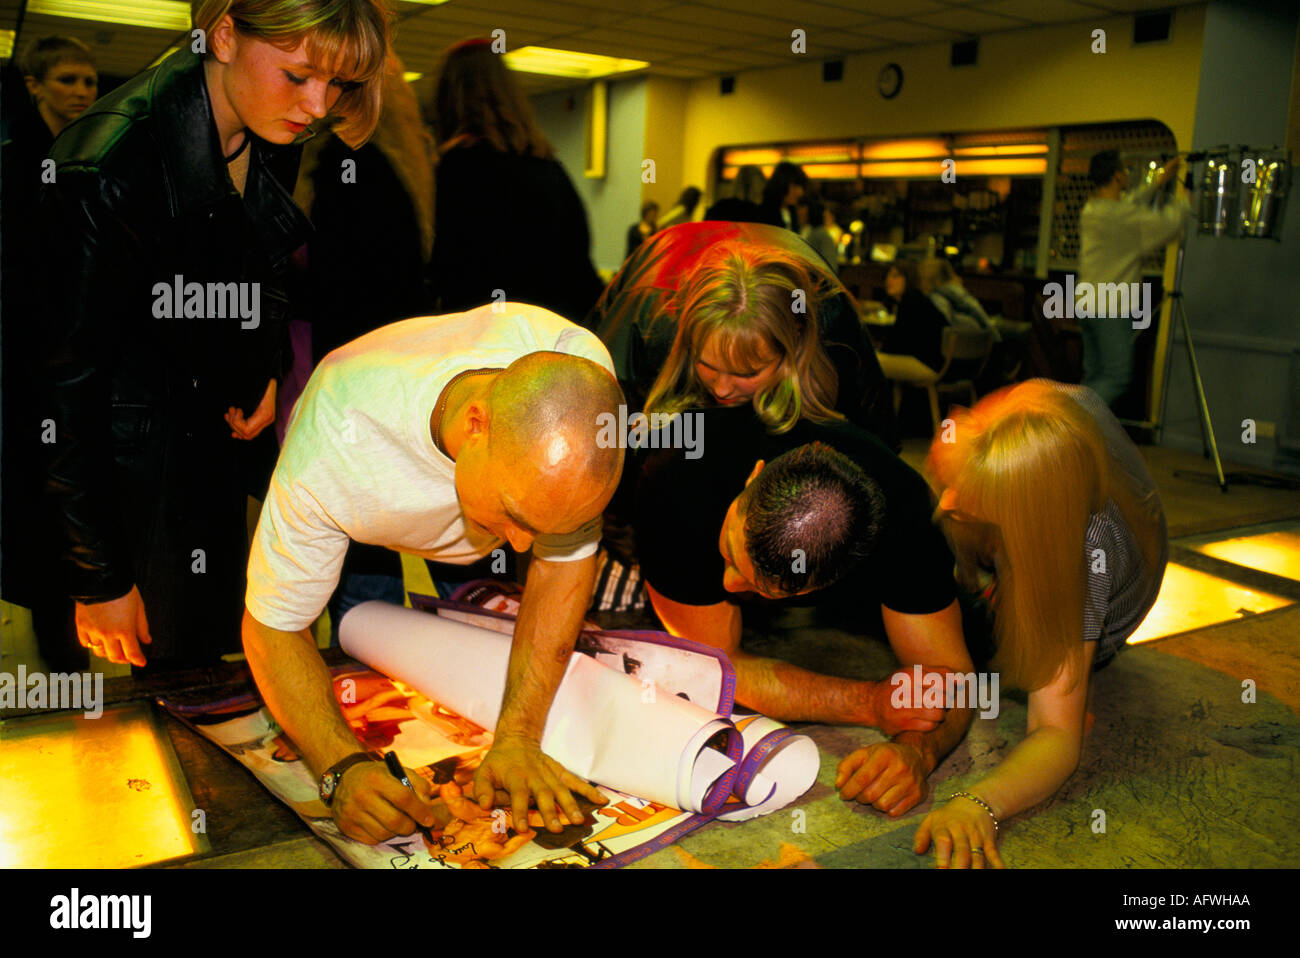 ENTERTAINER SIGNING AUTOGRAPHS FOR FANS AFTER PERFORMANCE.  HOMER SYKES - Stock Image